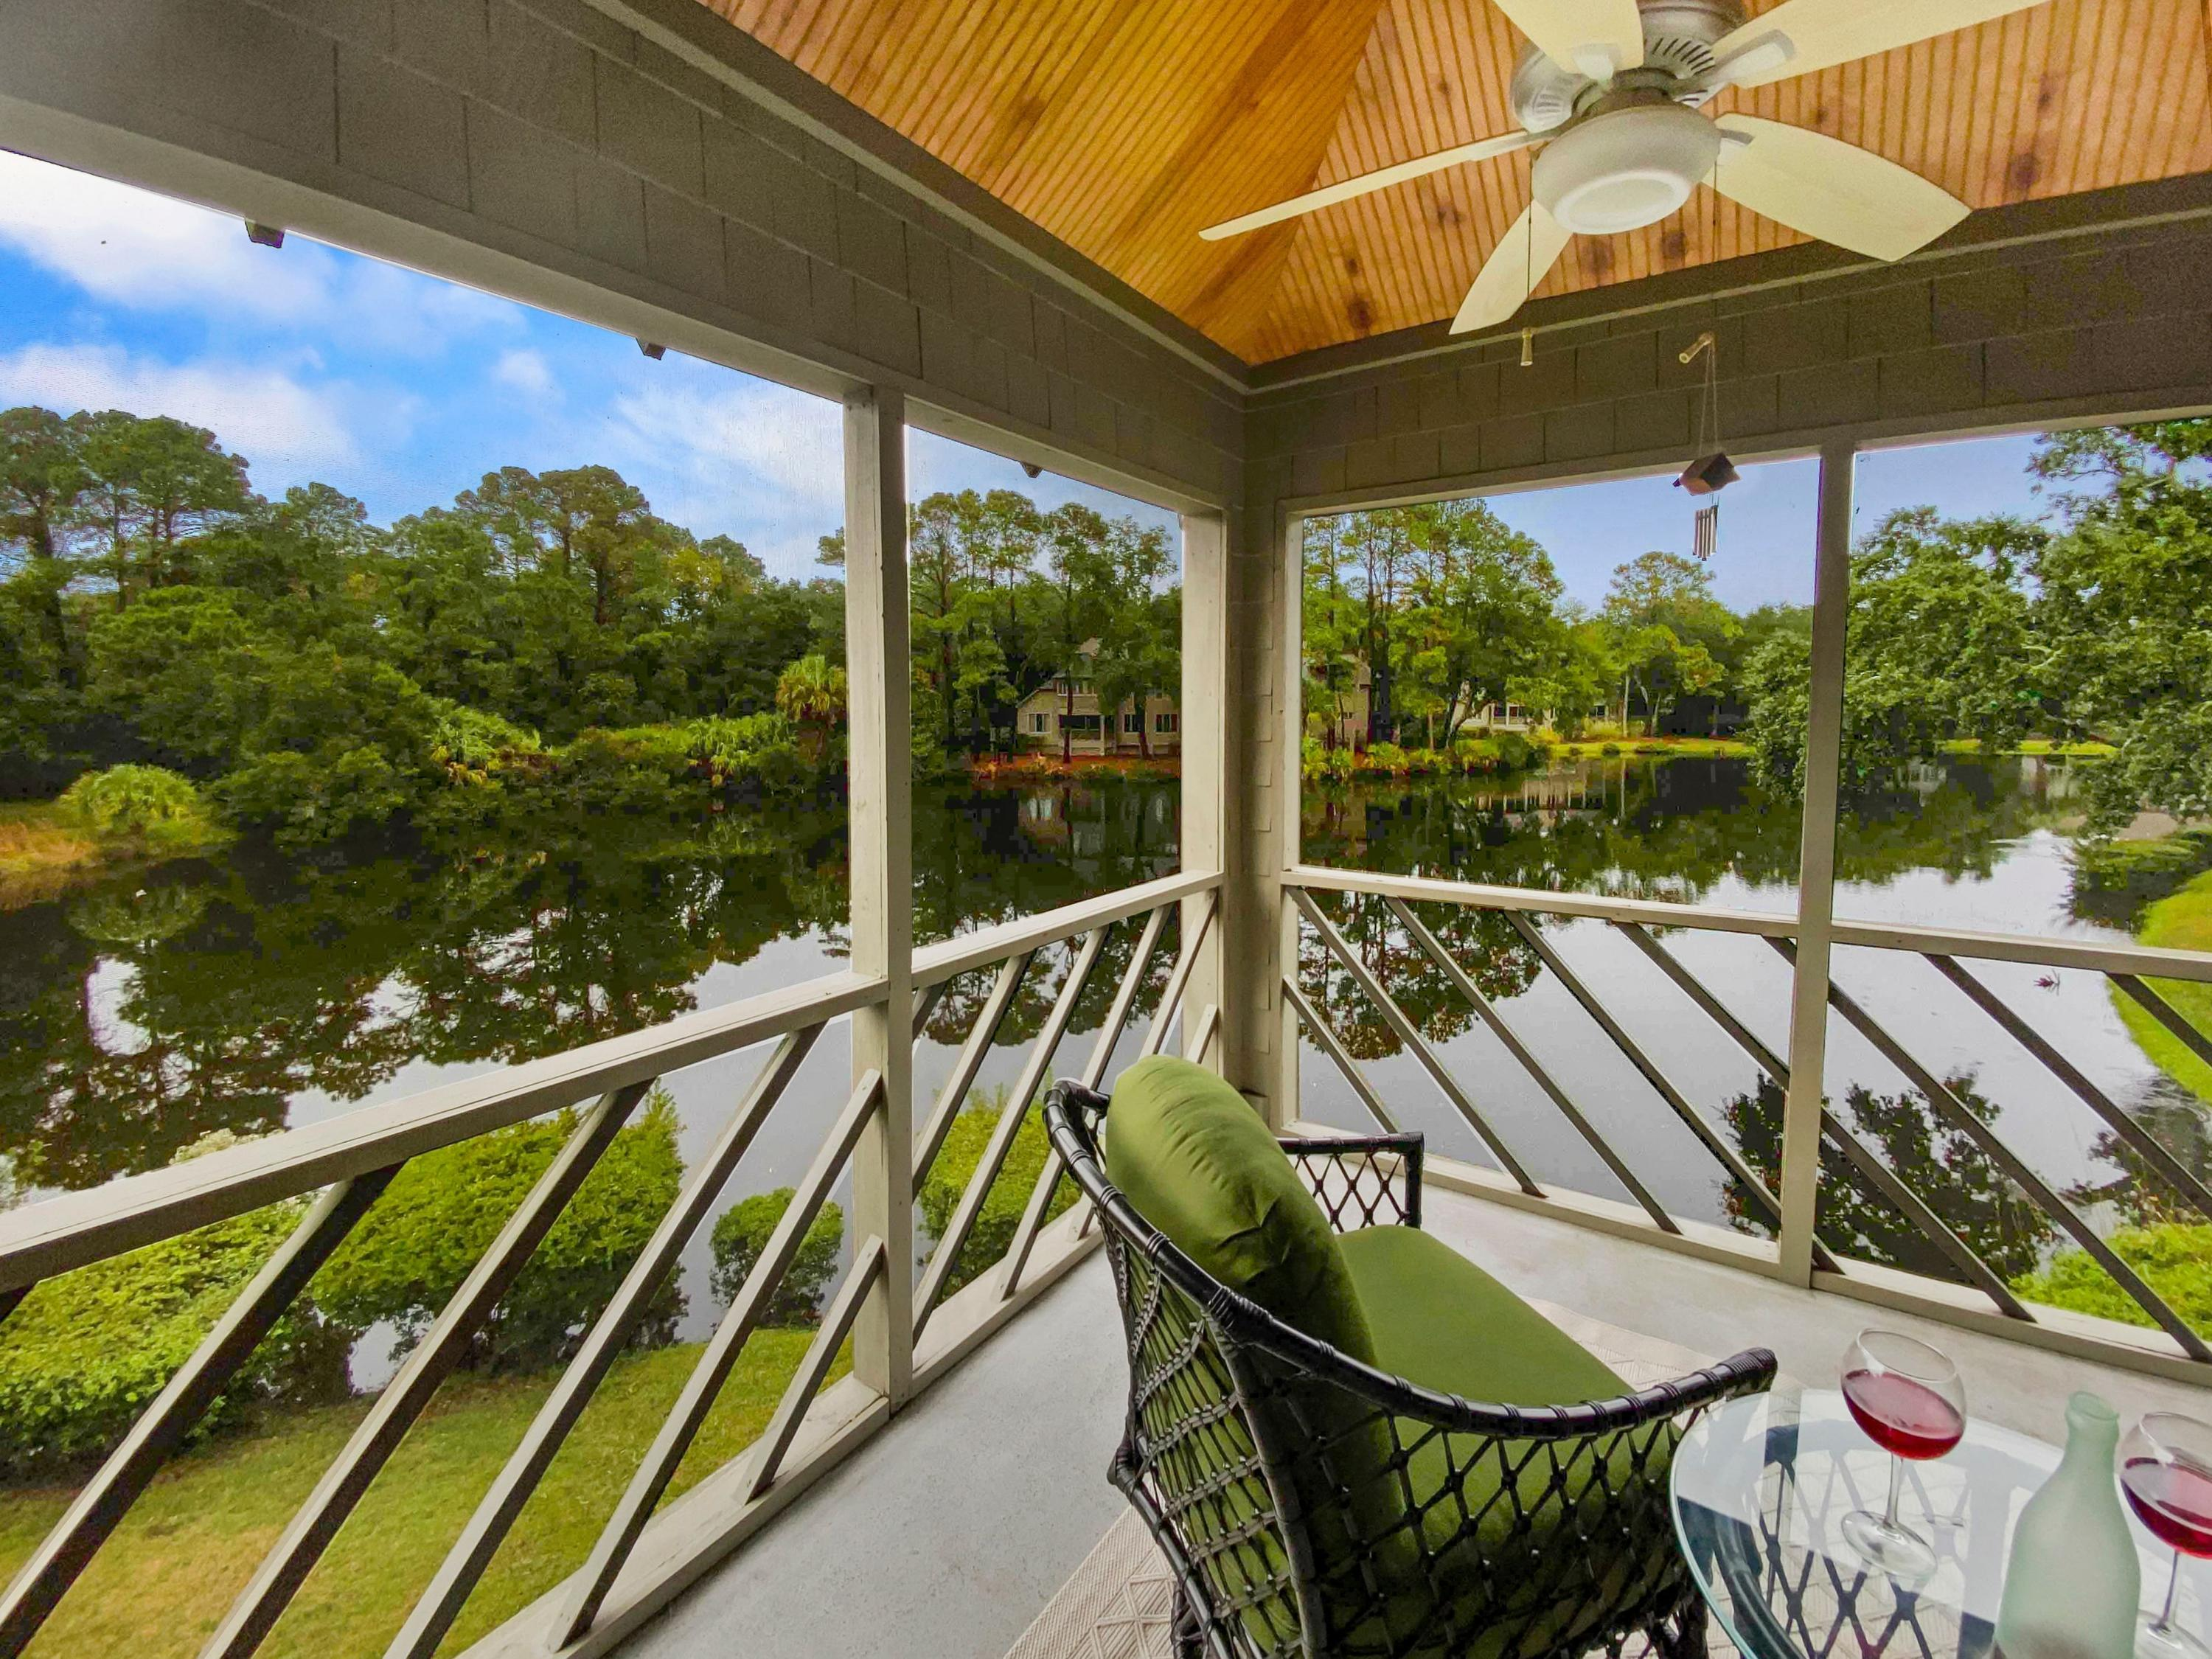 Kiawah Island Condos For Sale - 4676 Tennis Club Villas, Kiawah Island, SC - 16